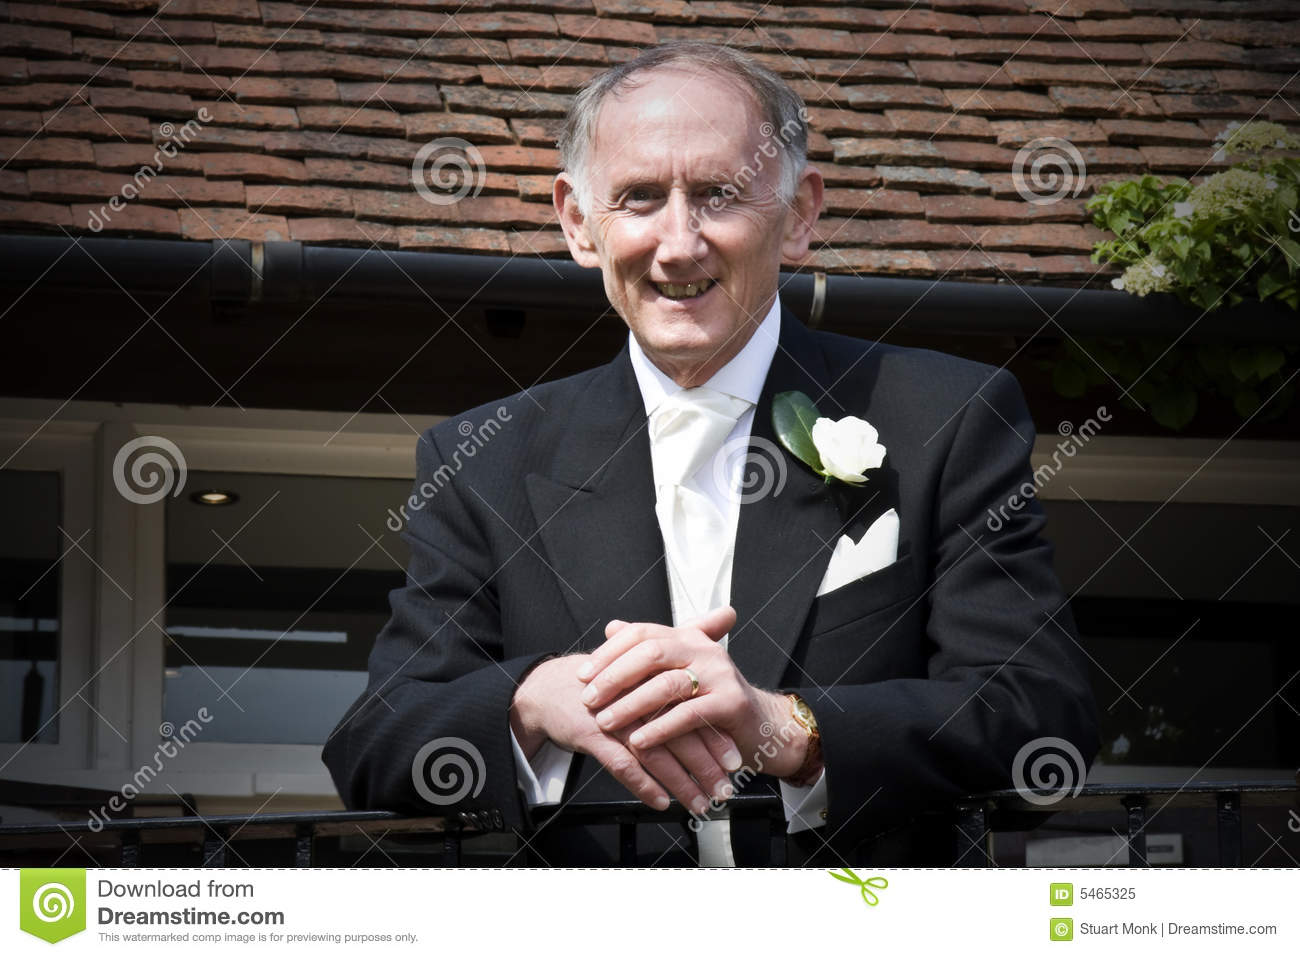 father of the bride stock image image of jacket vignette 5465325